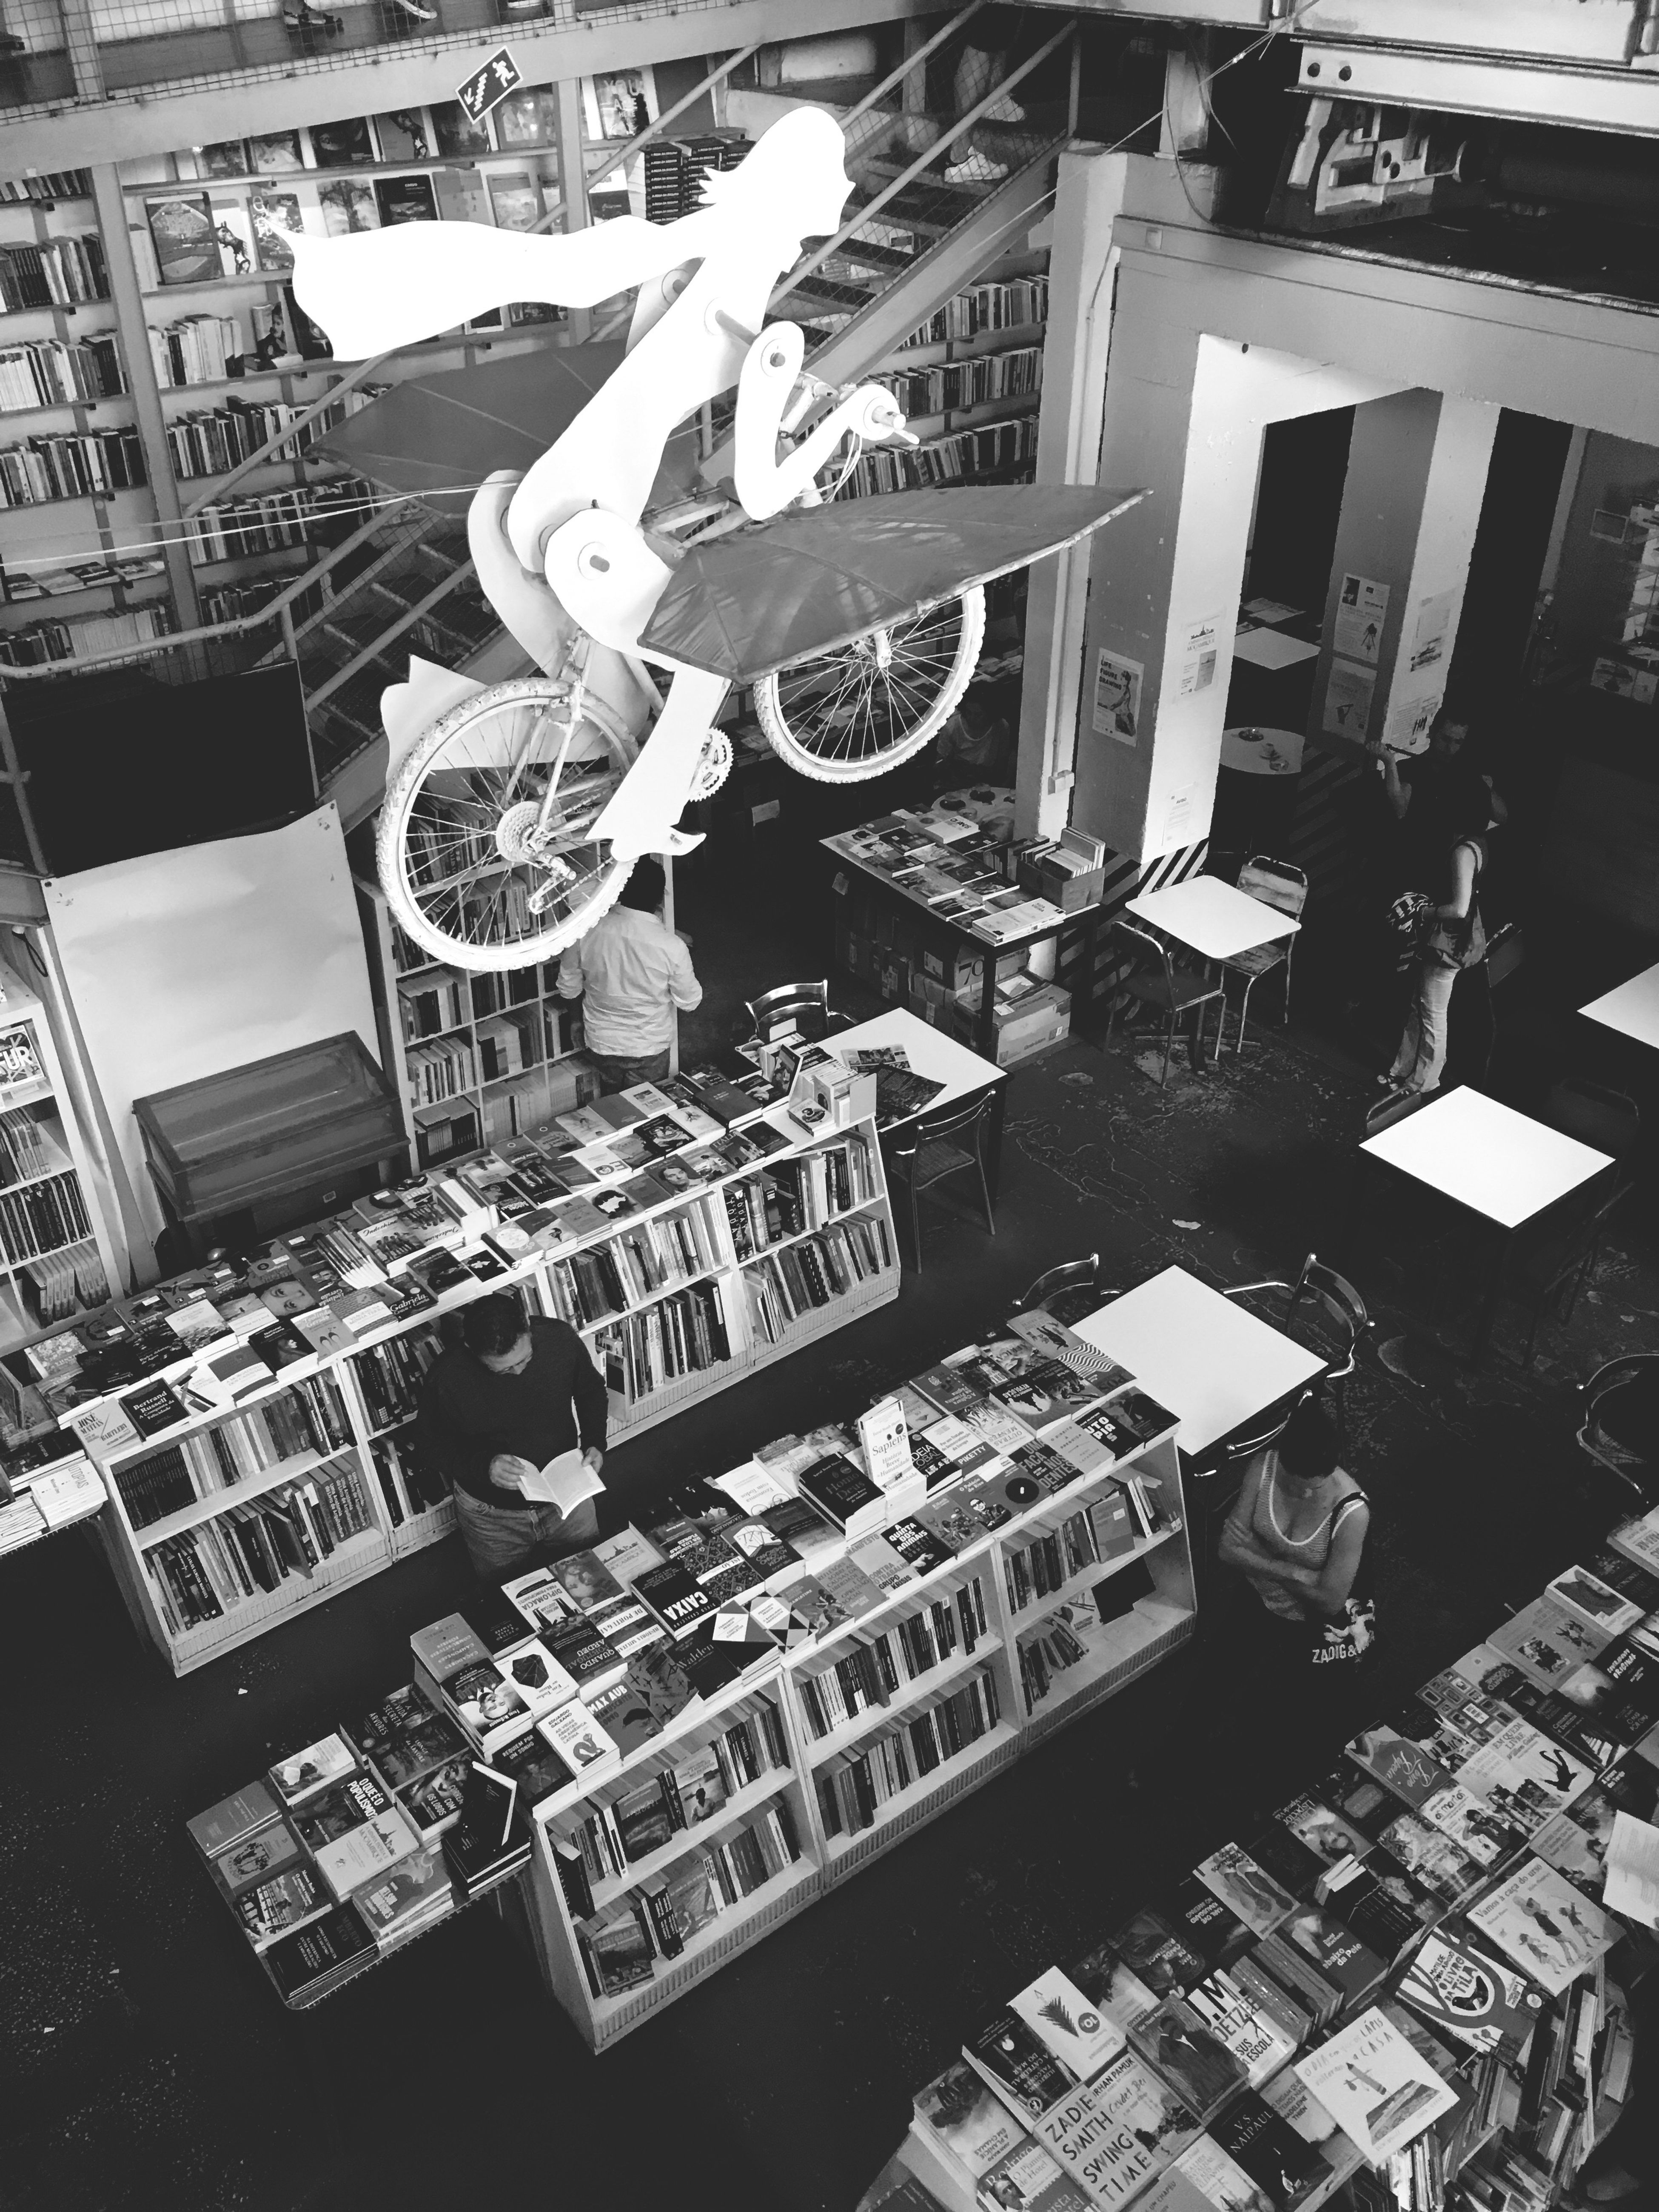 Too many books Books Readers Bookstore Literature Saturday Afternoon Relaxing View Booklover BookLovers Adicted To Books Black & White